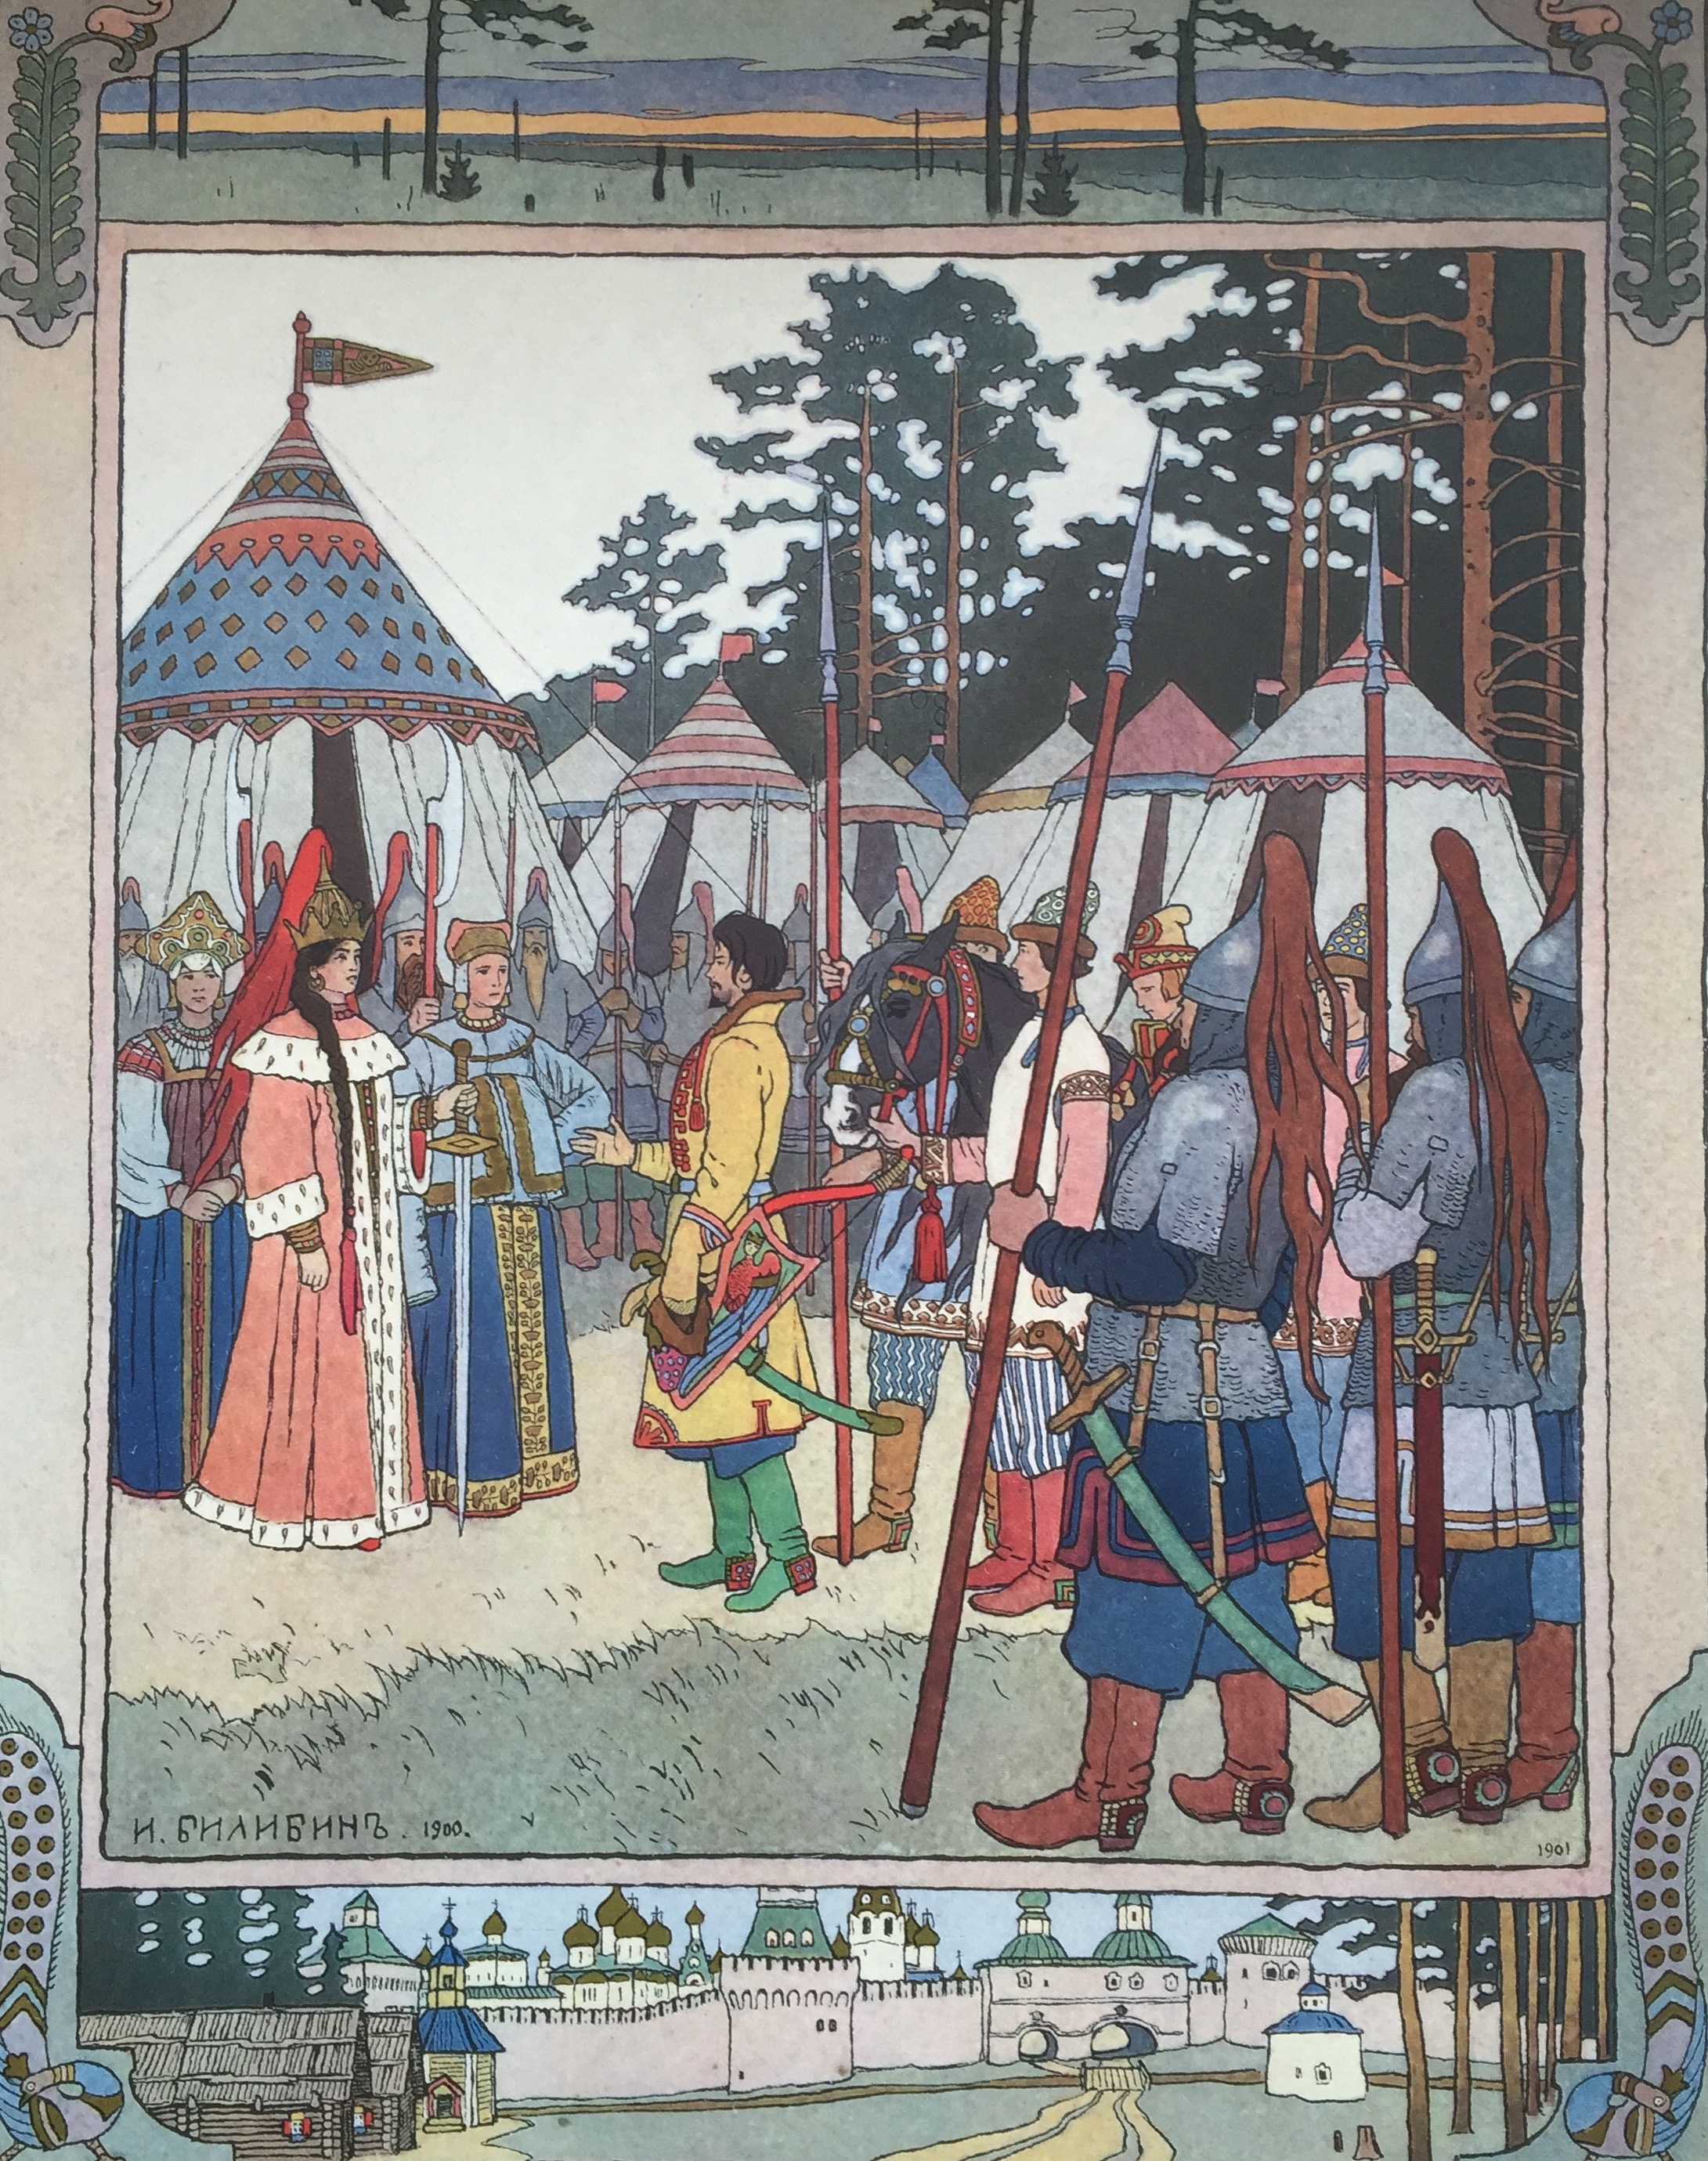 Marja Morevna, the warrior queen, greets her handsome visitor. From Marja Morevna, a Russian Fairy Tale by Ivan Bilibin.